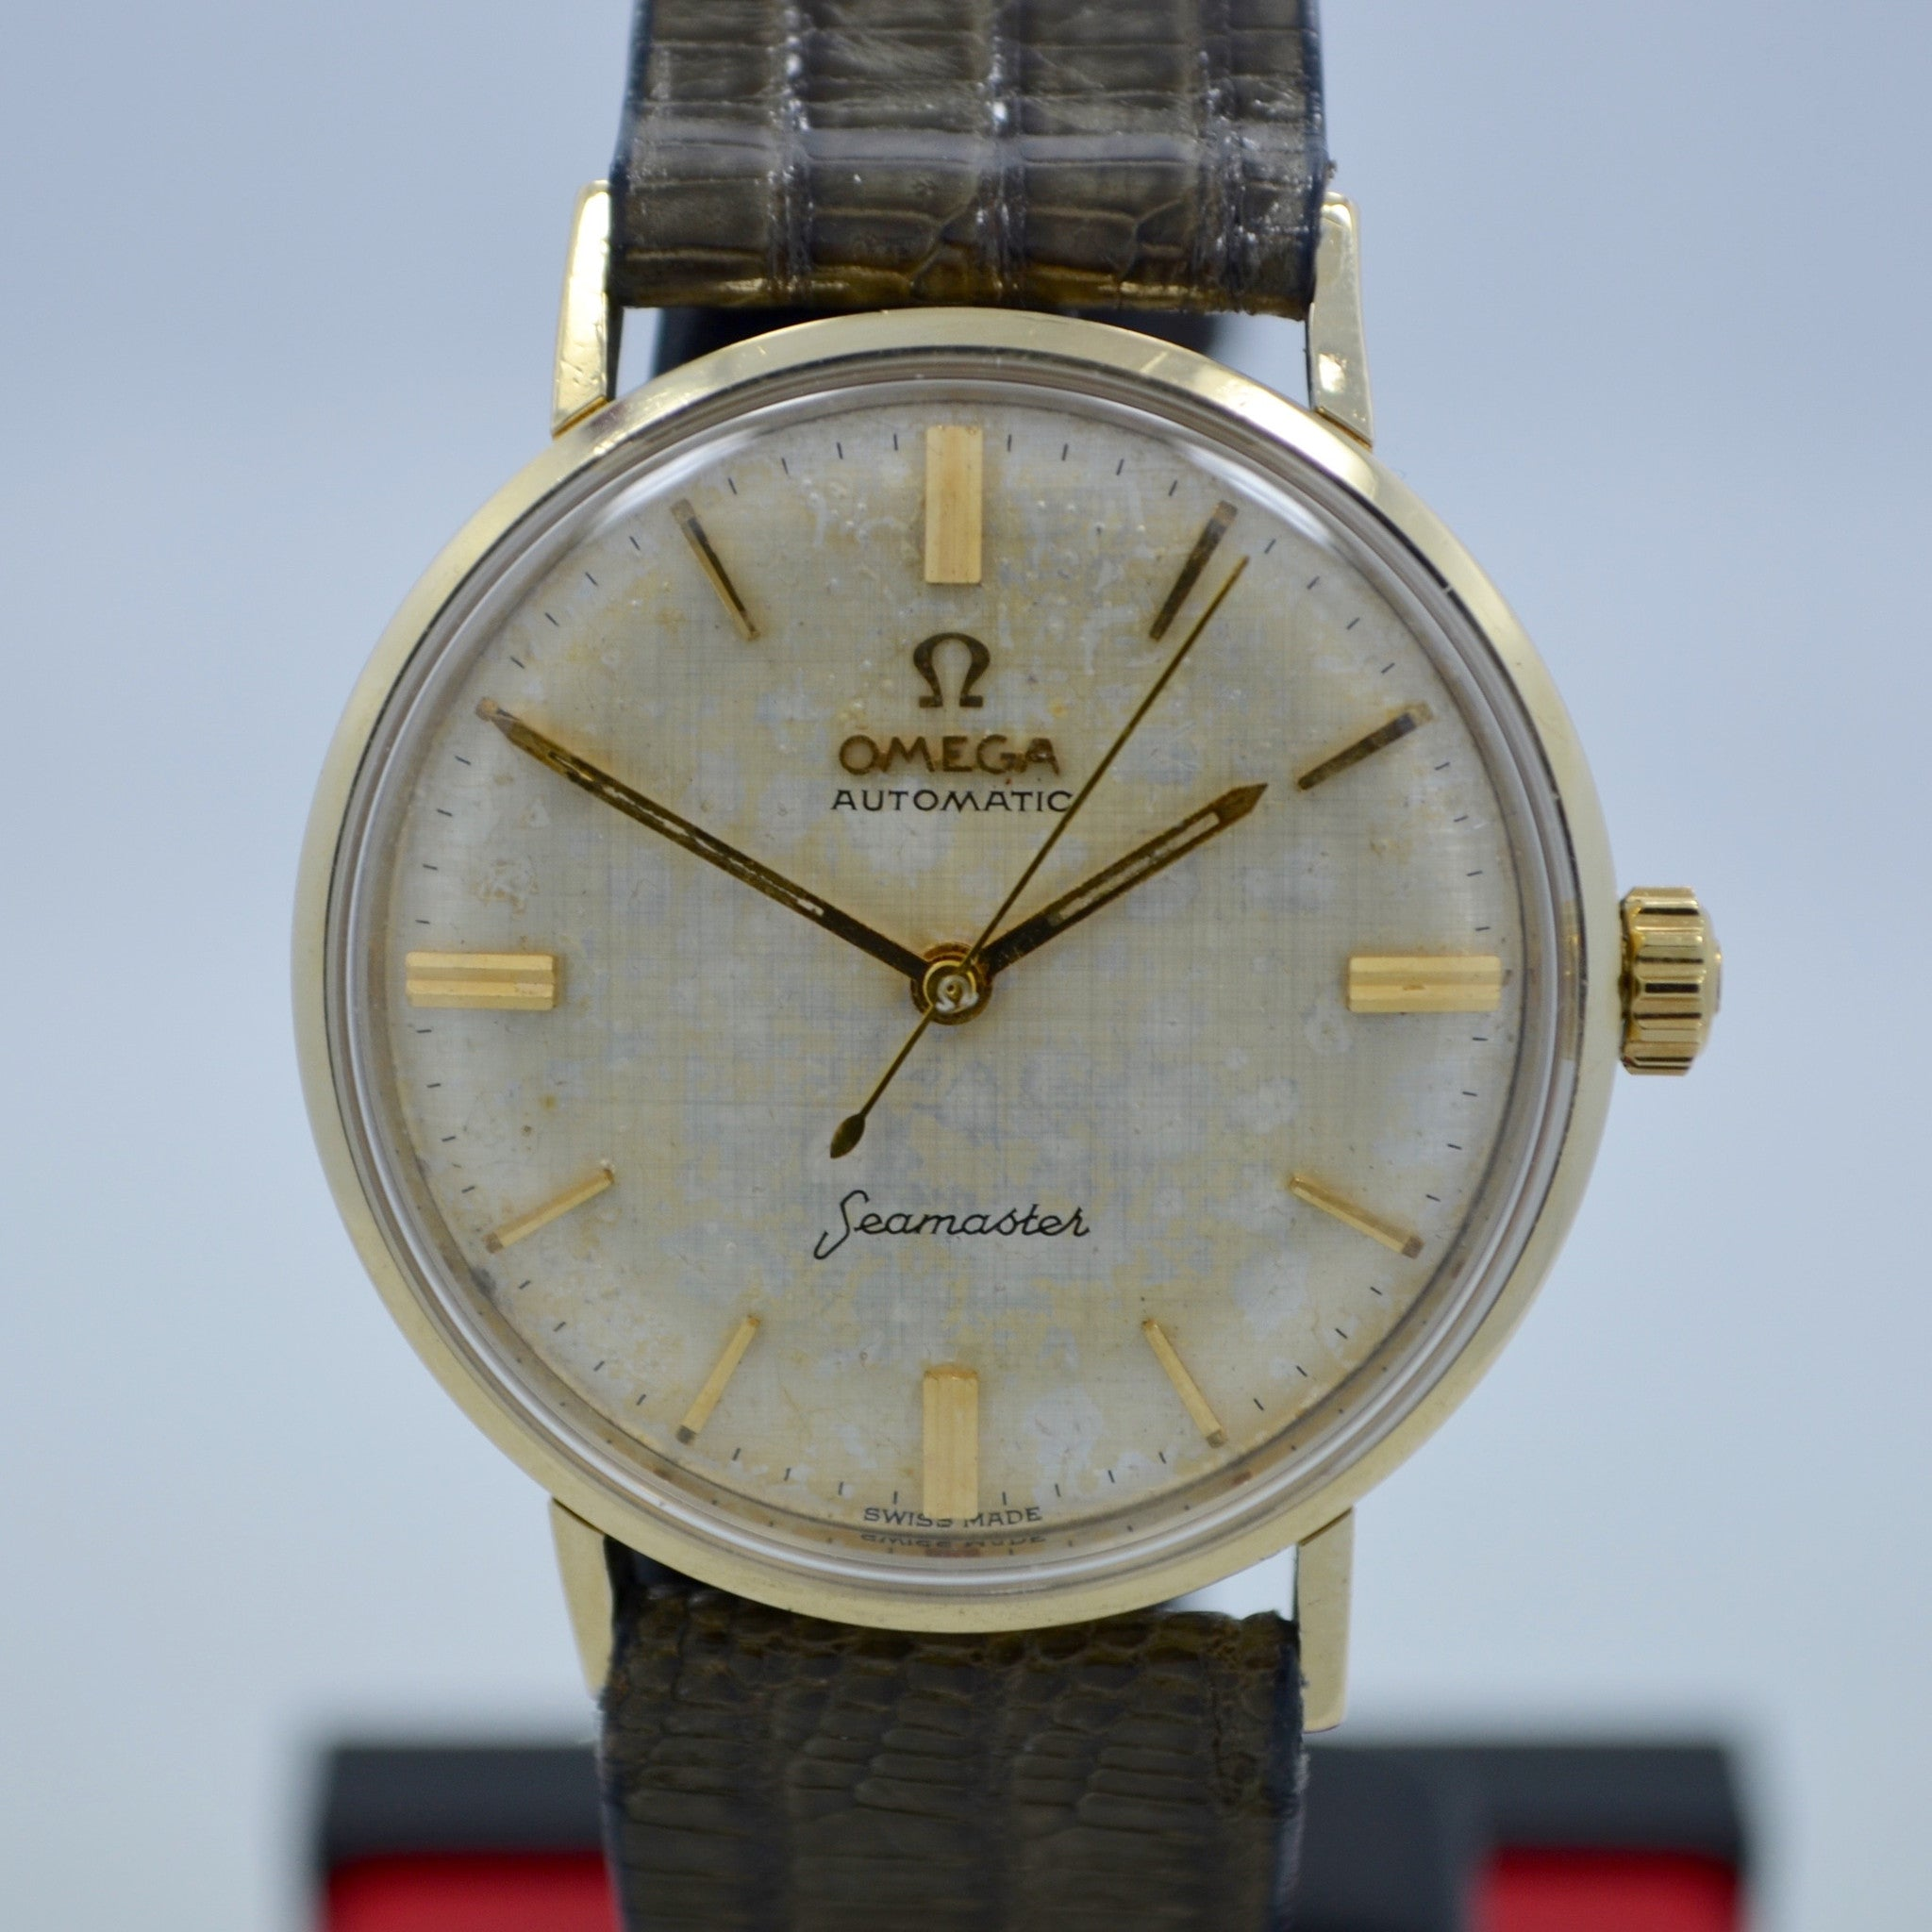 Vintage Omega Seamaster 6590-1 14K Solid Yellow Gold Cal. 550 Automatic Watch - Hashtag Watch Company